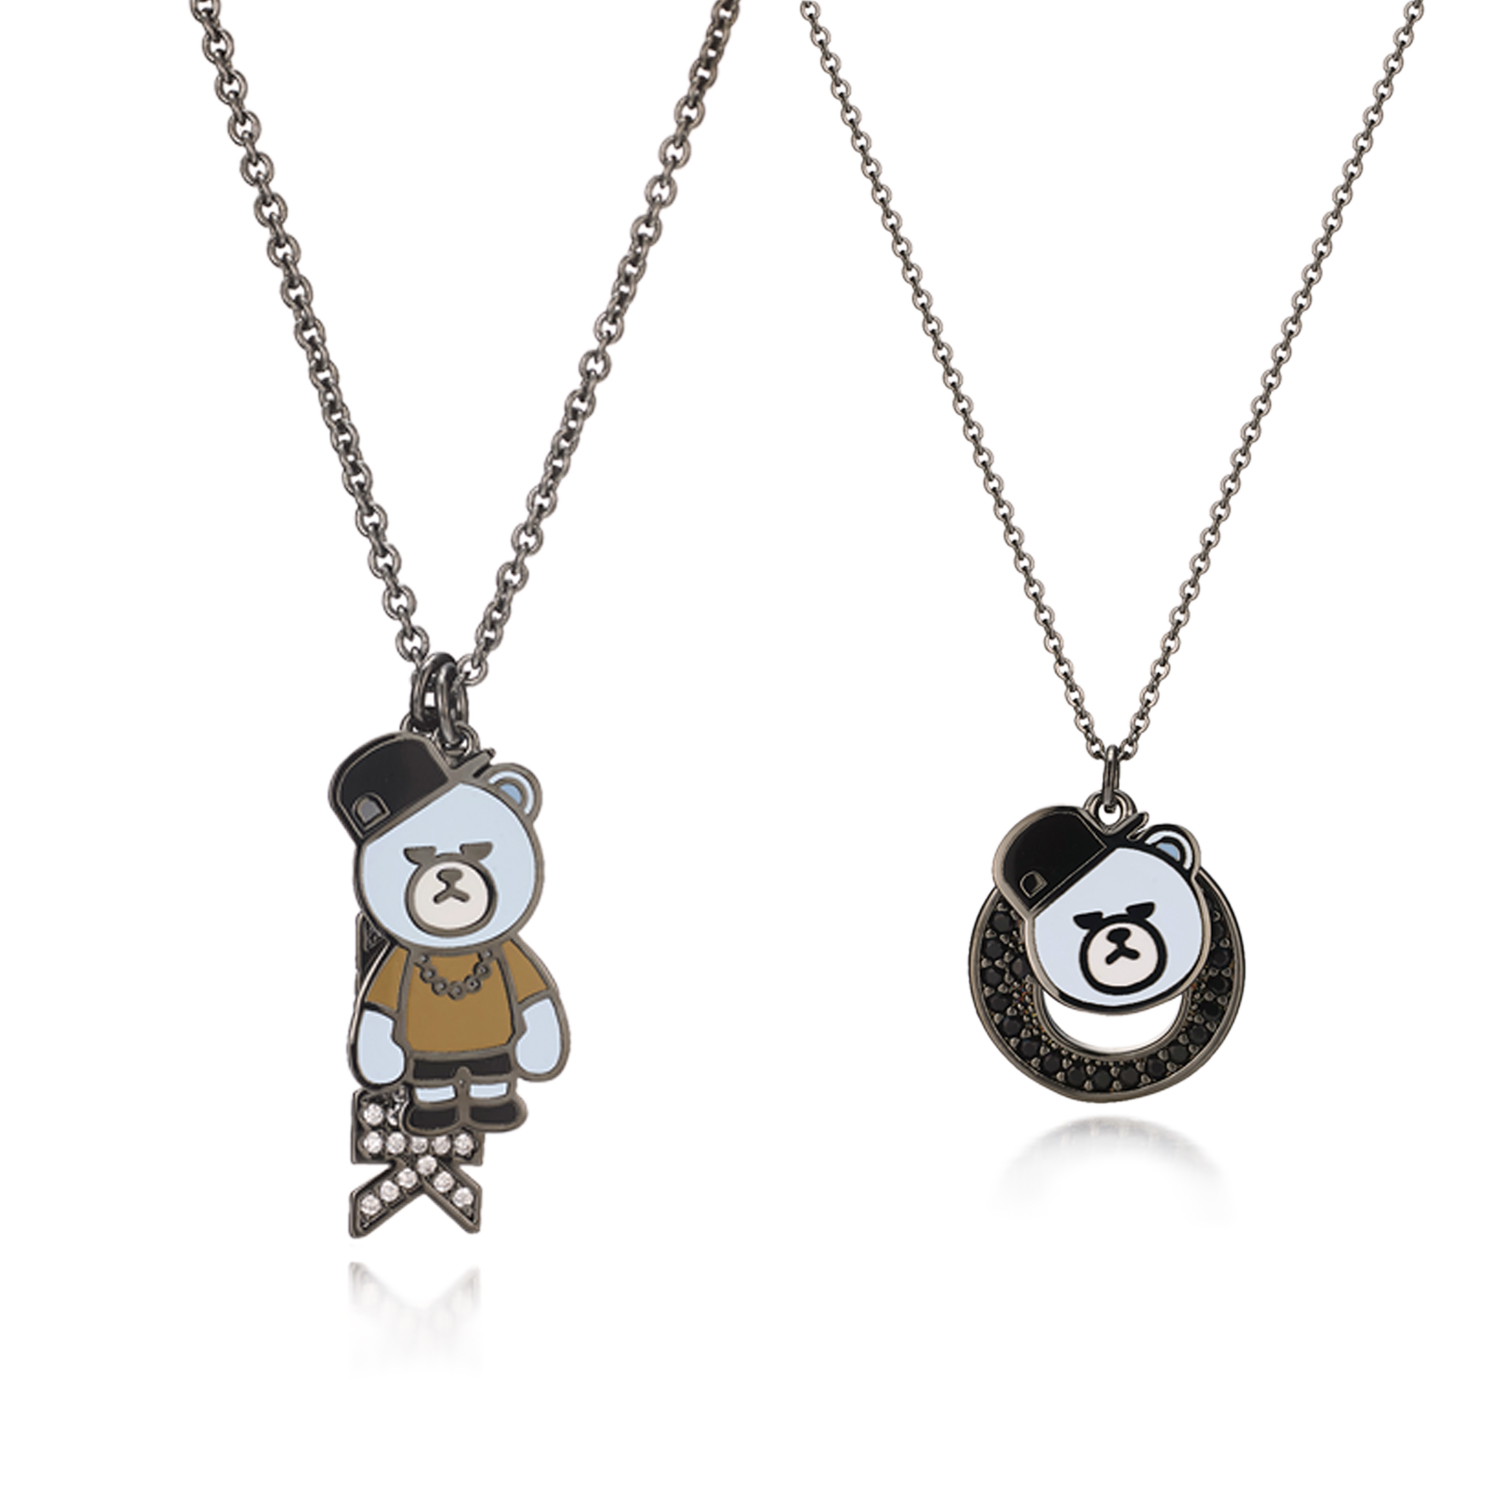 KRUNK NECKLACE